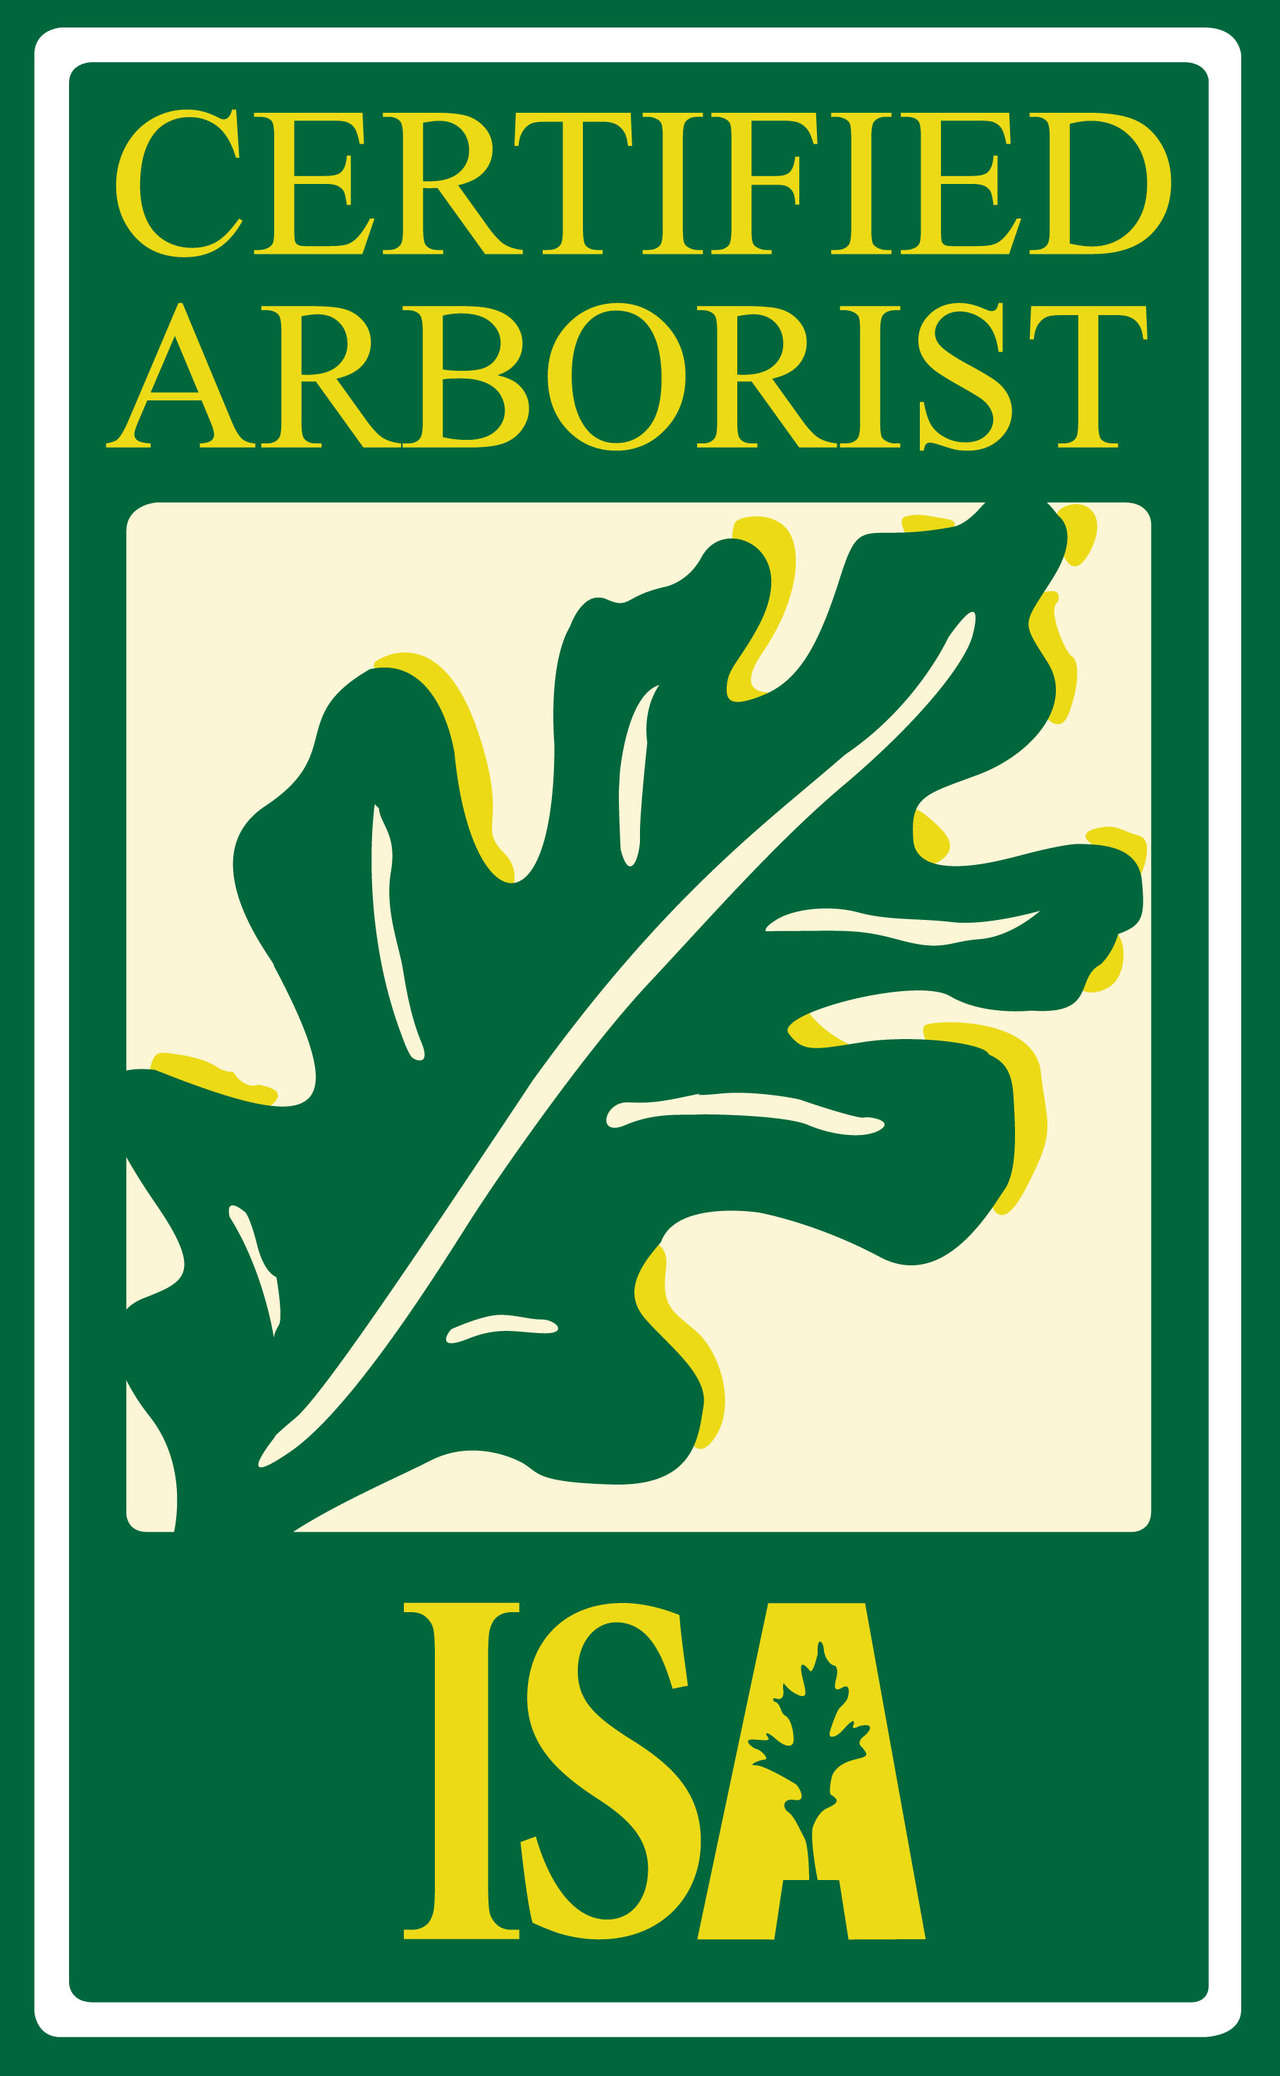 Certified Arborist License #213857 International Society of Aboriculture